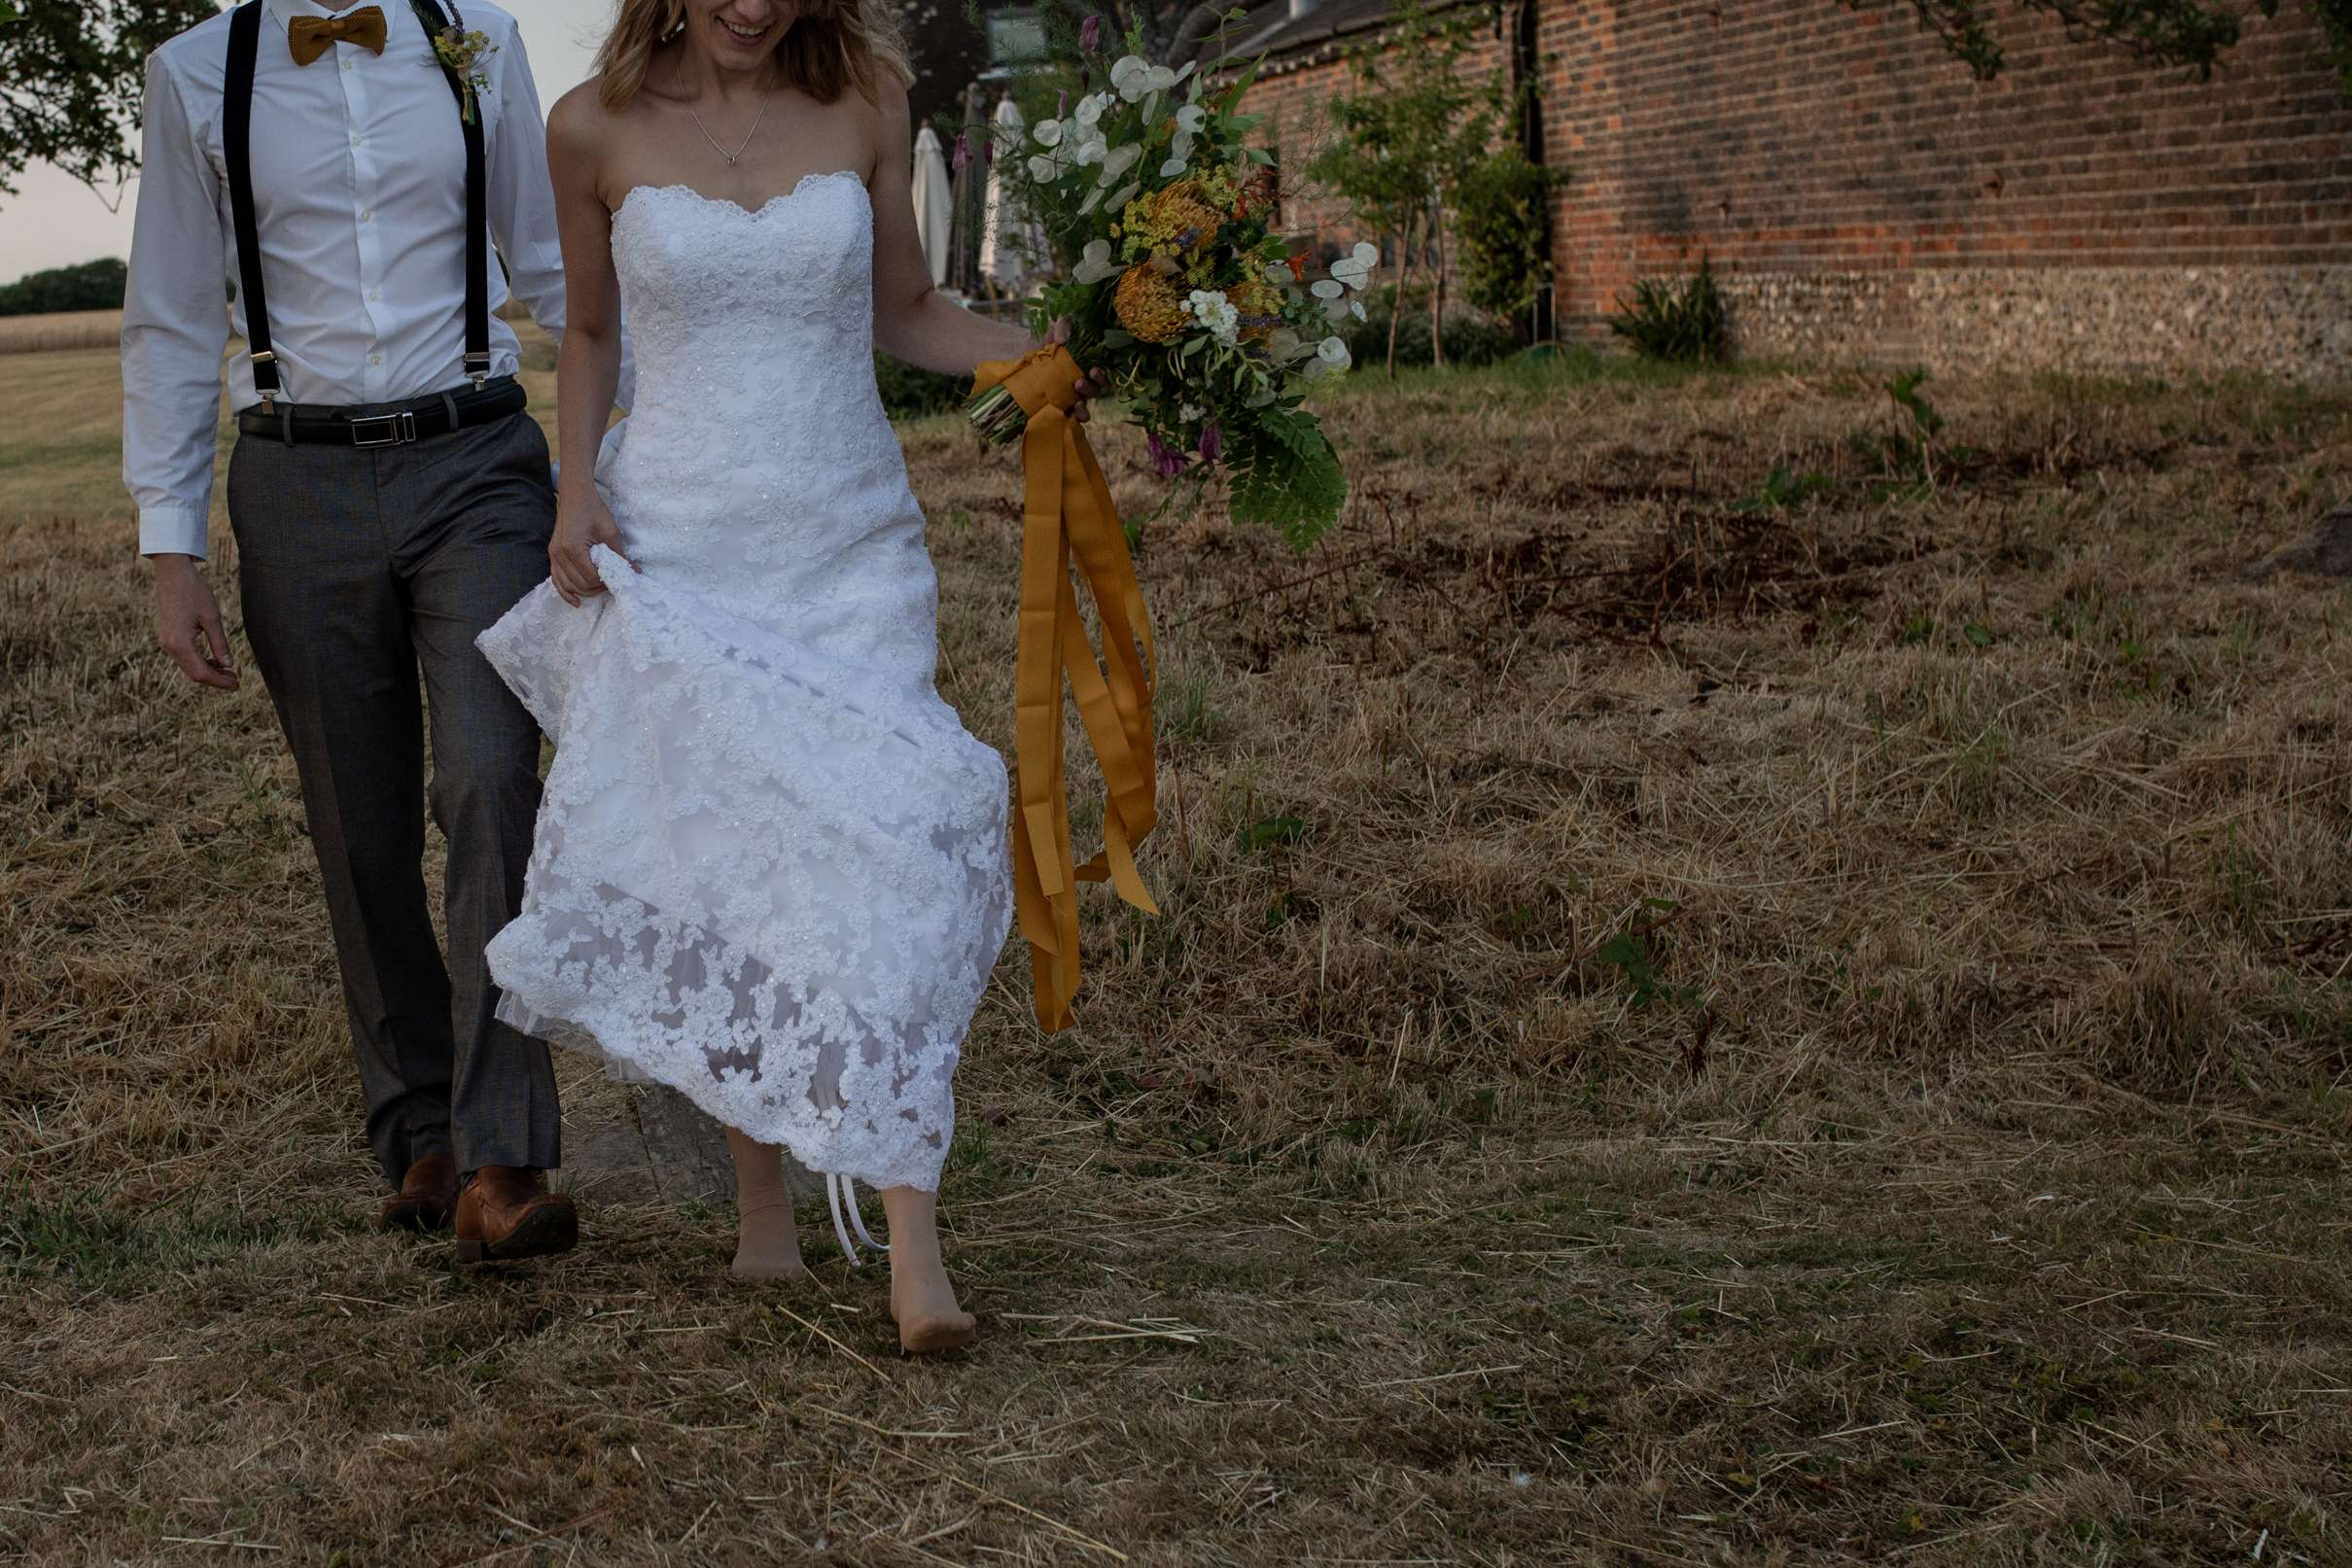 A wedding photo of a bride and groom walking along, taken at Chidham barn, Chichester